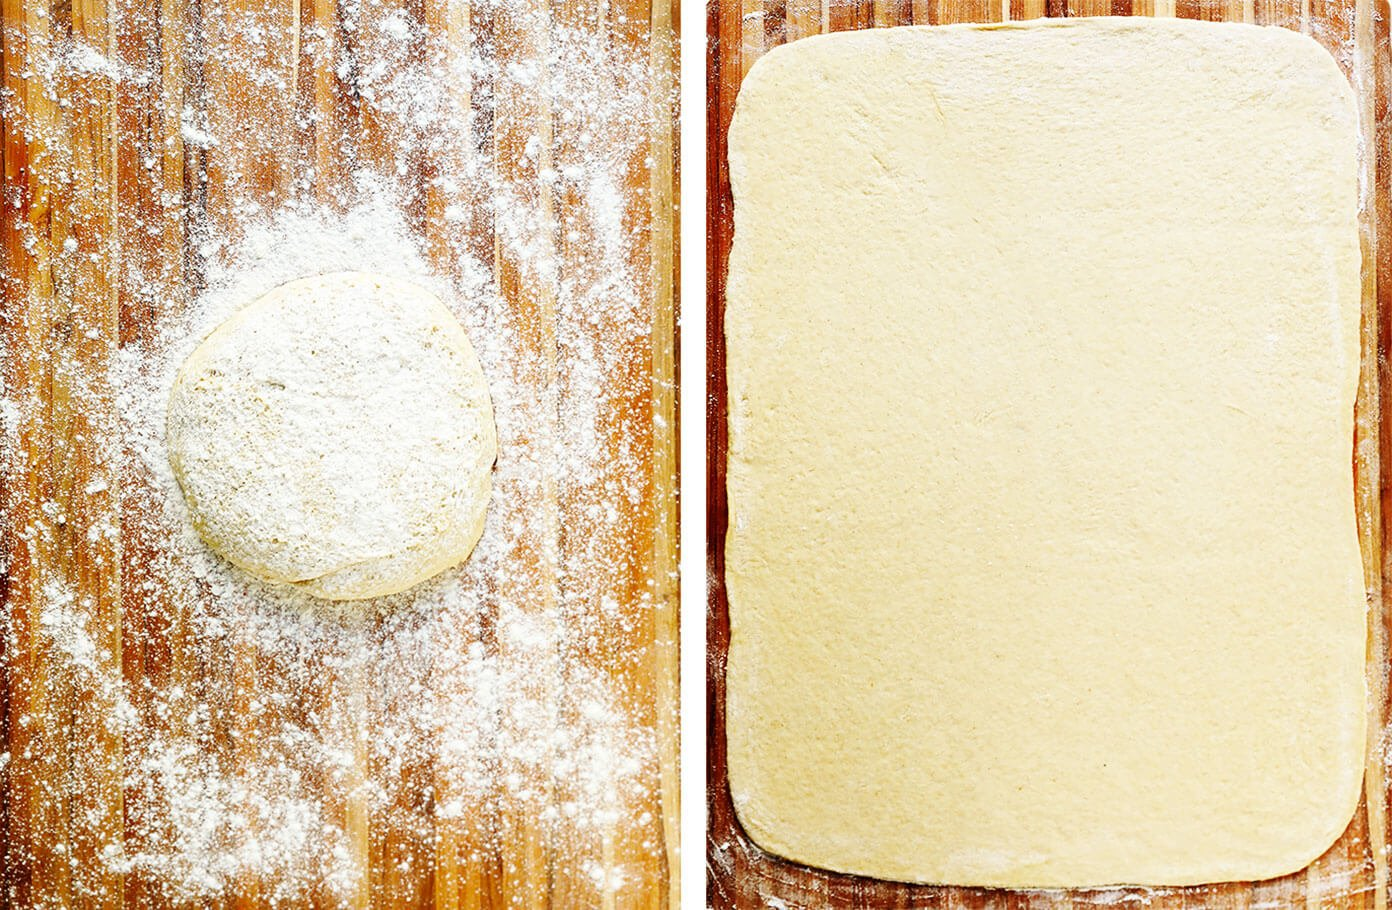 How To Make Swedish Cinnamon Bun Dough